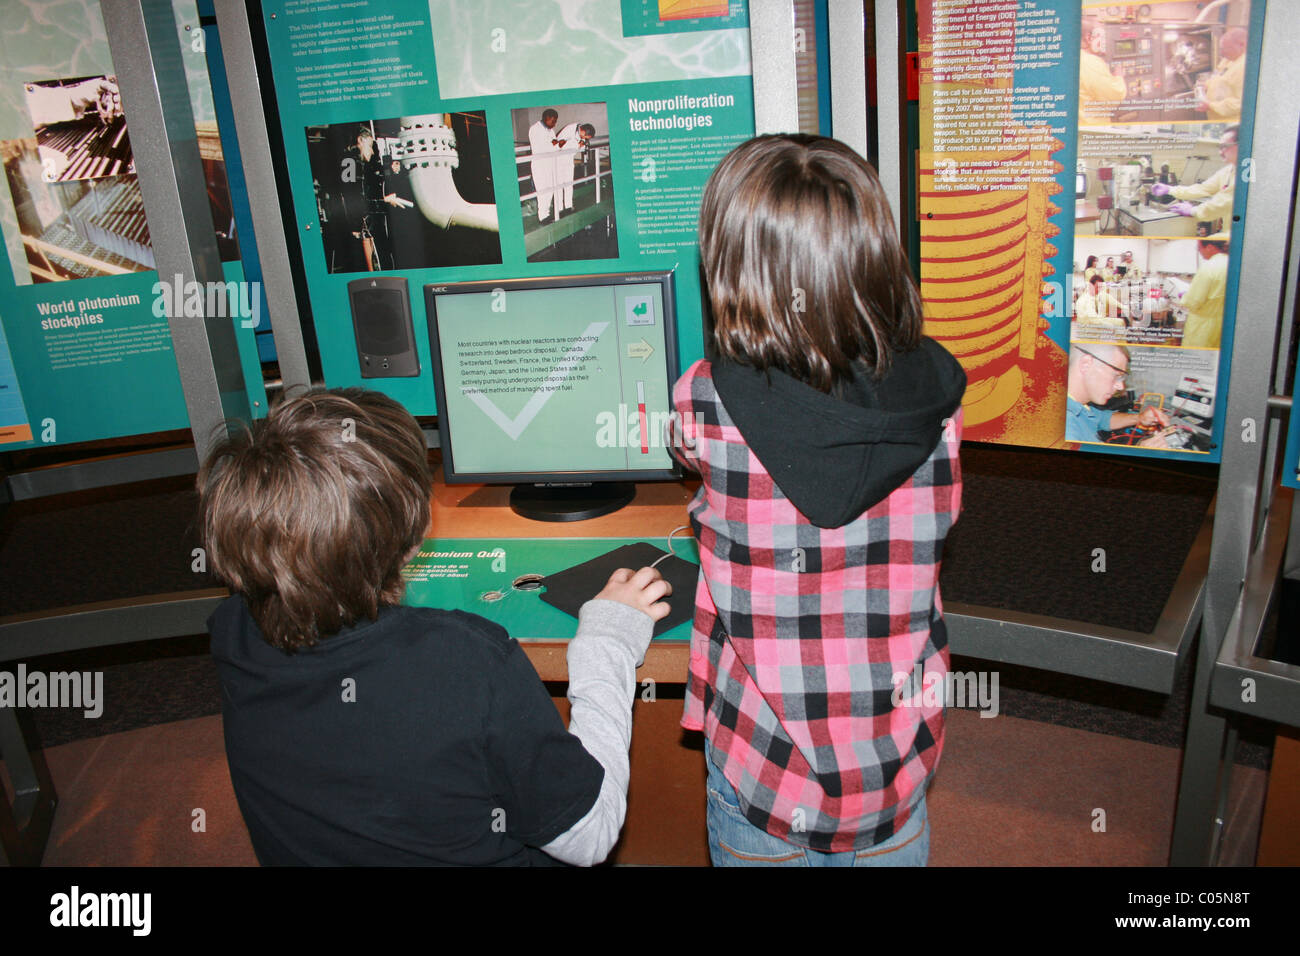 Children learning about storage of plutonium,  Science museum - Stock Image